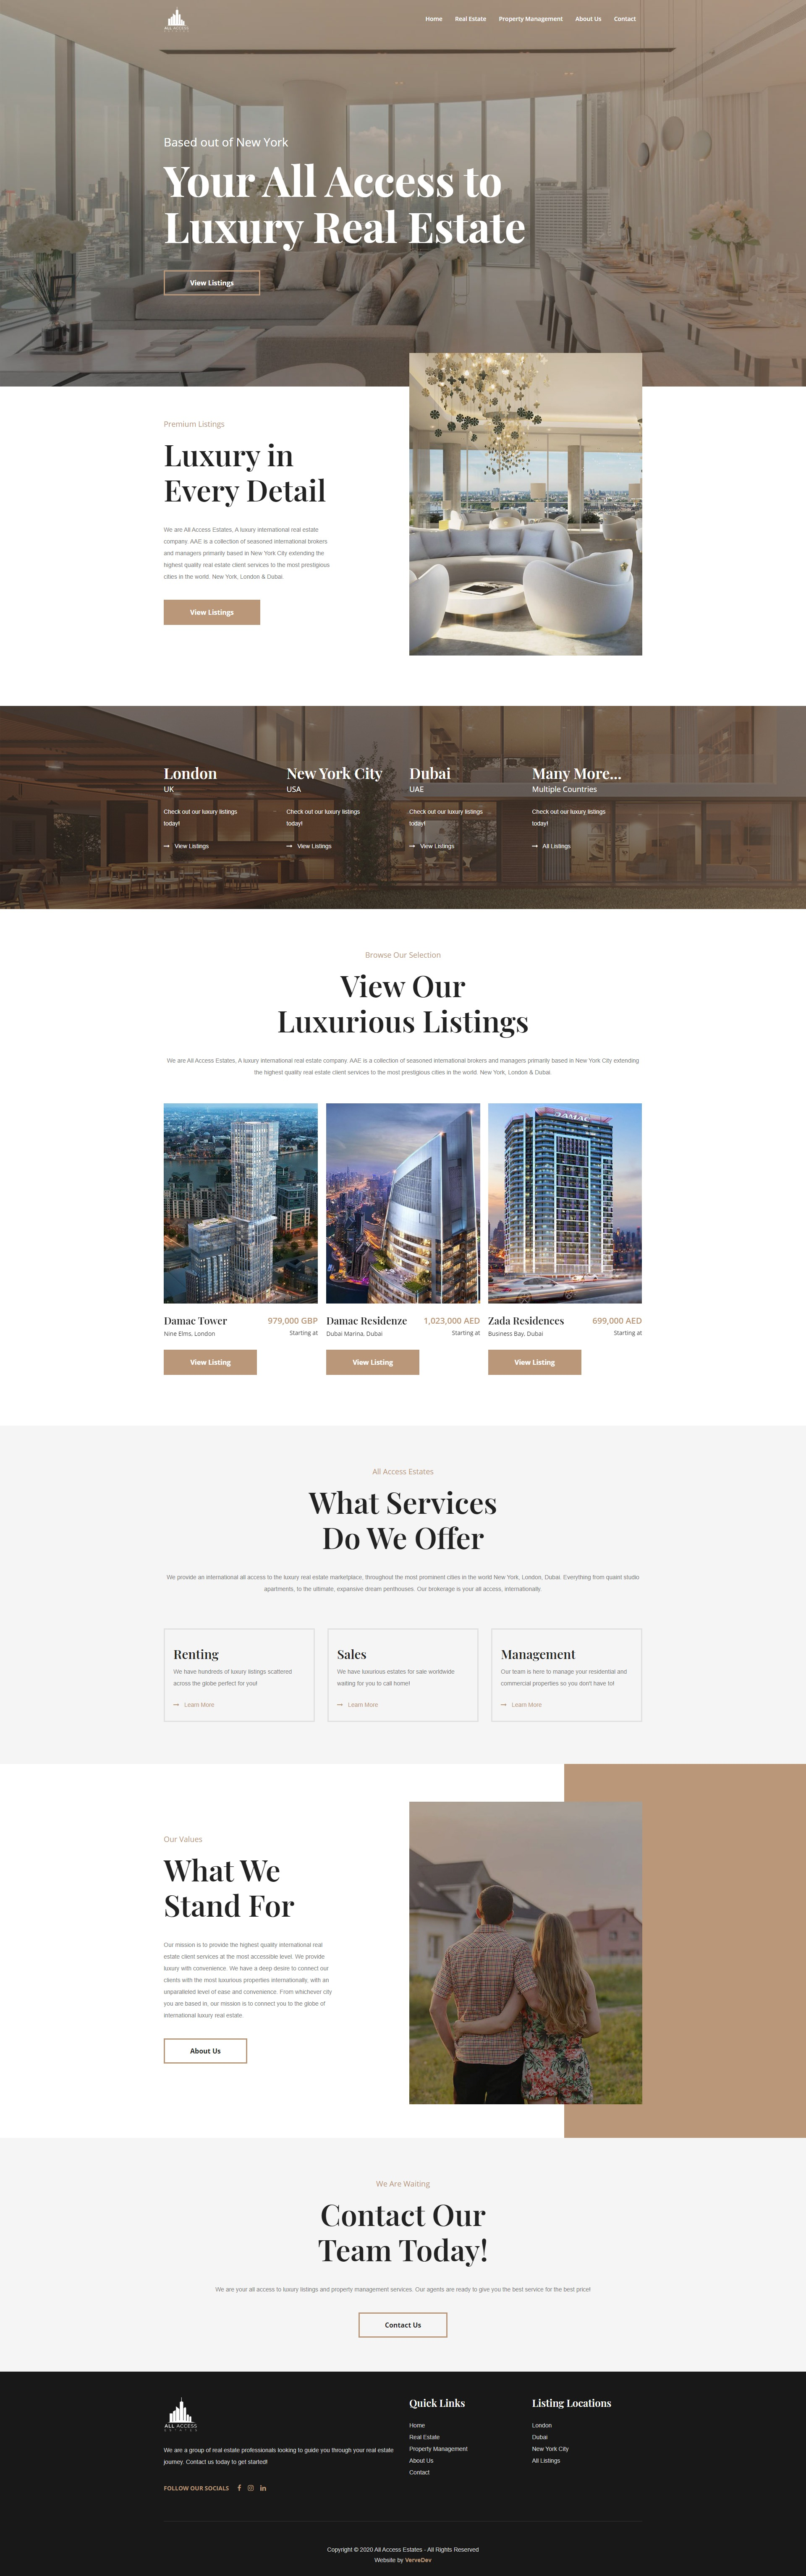 boston-website-design-portfolio-2